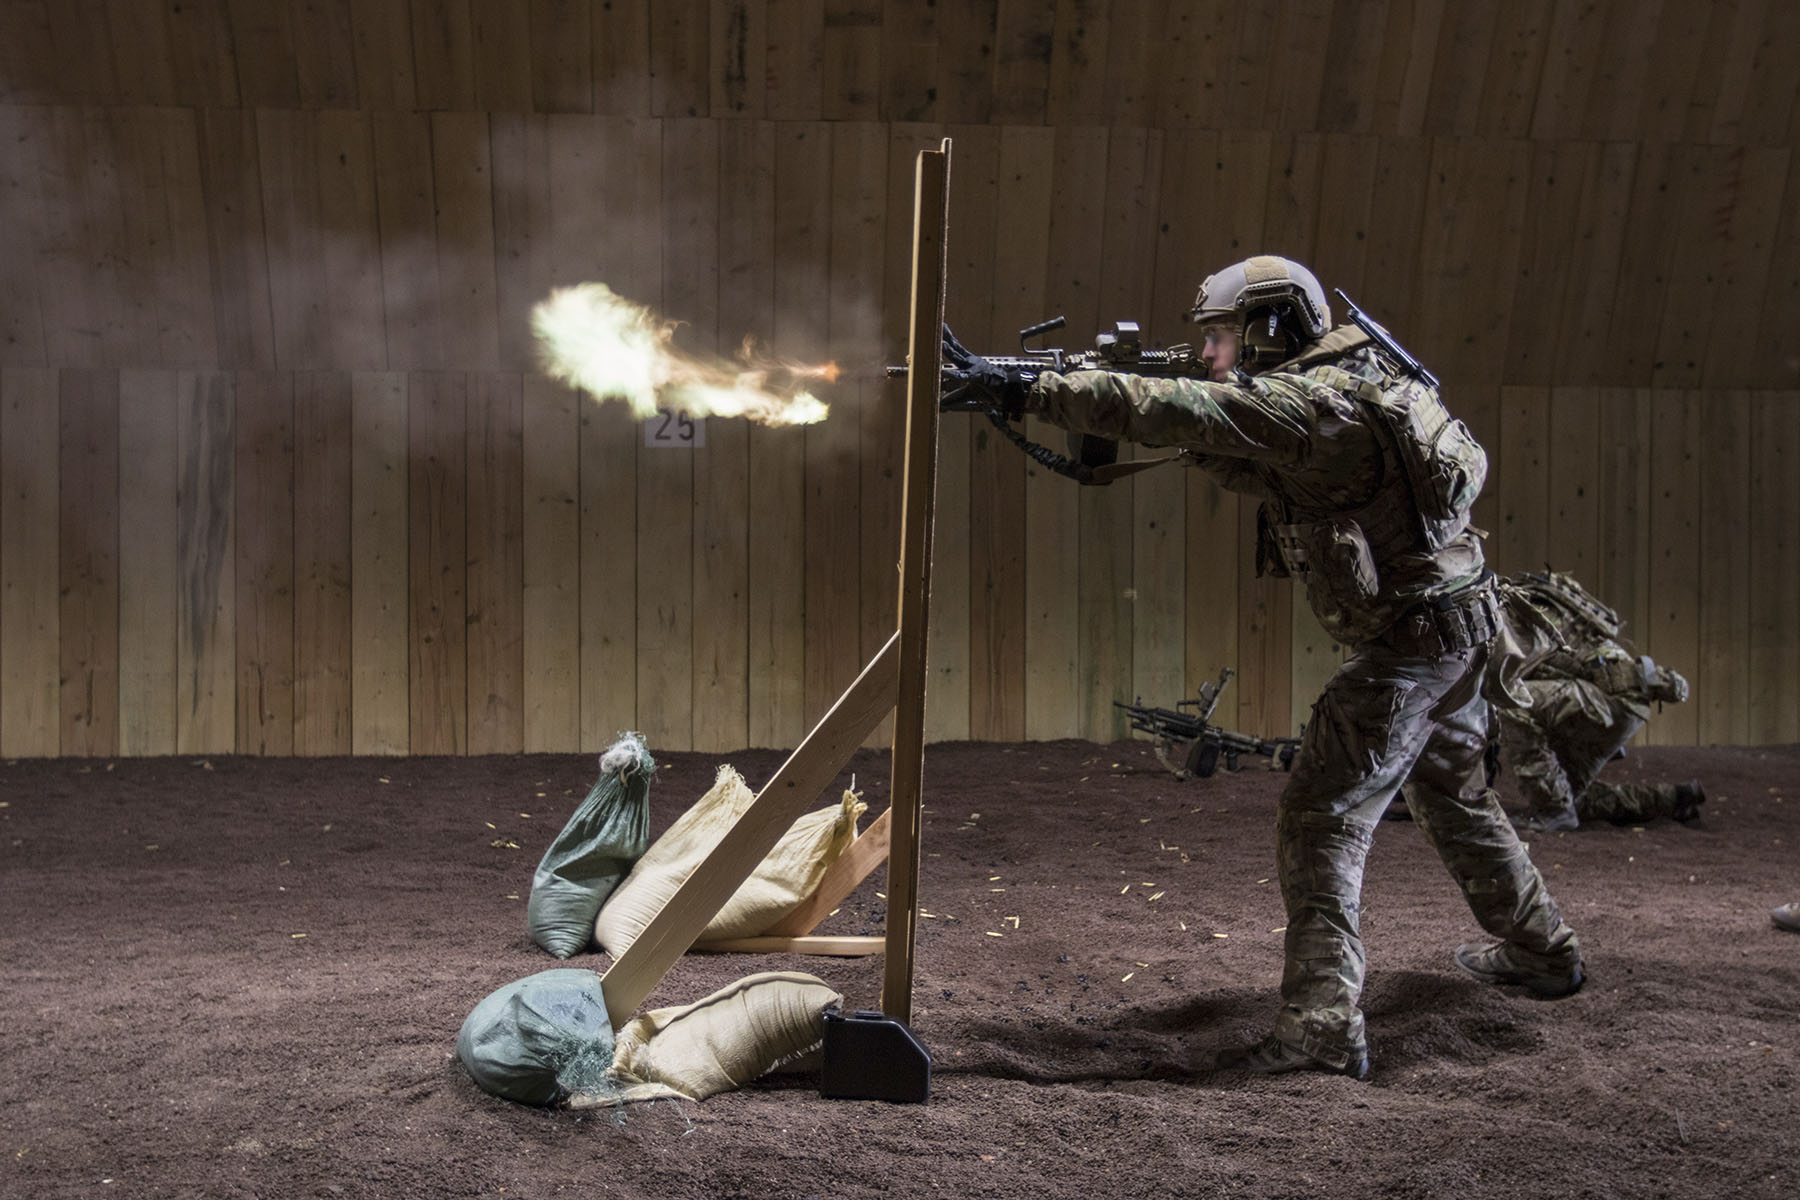 A Special Forces soldier assigned to 10th Special Forces Group (Airborne) conducts advanced marksmanship drills during a training event at Panzer Kaserne, Germany. (Staff Sgt. Matt Britton/Army)